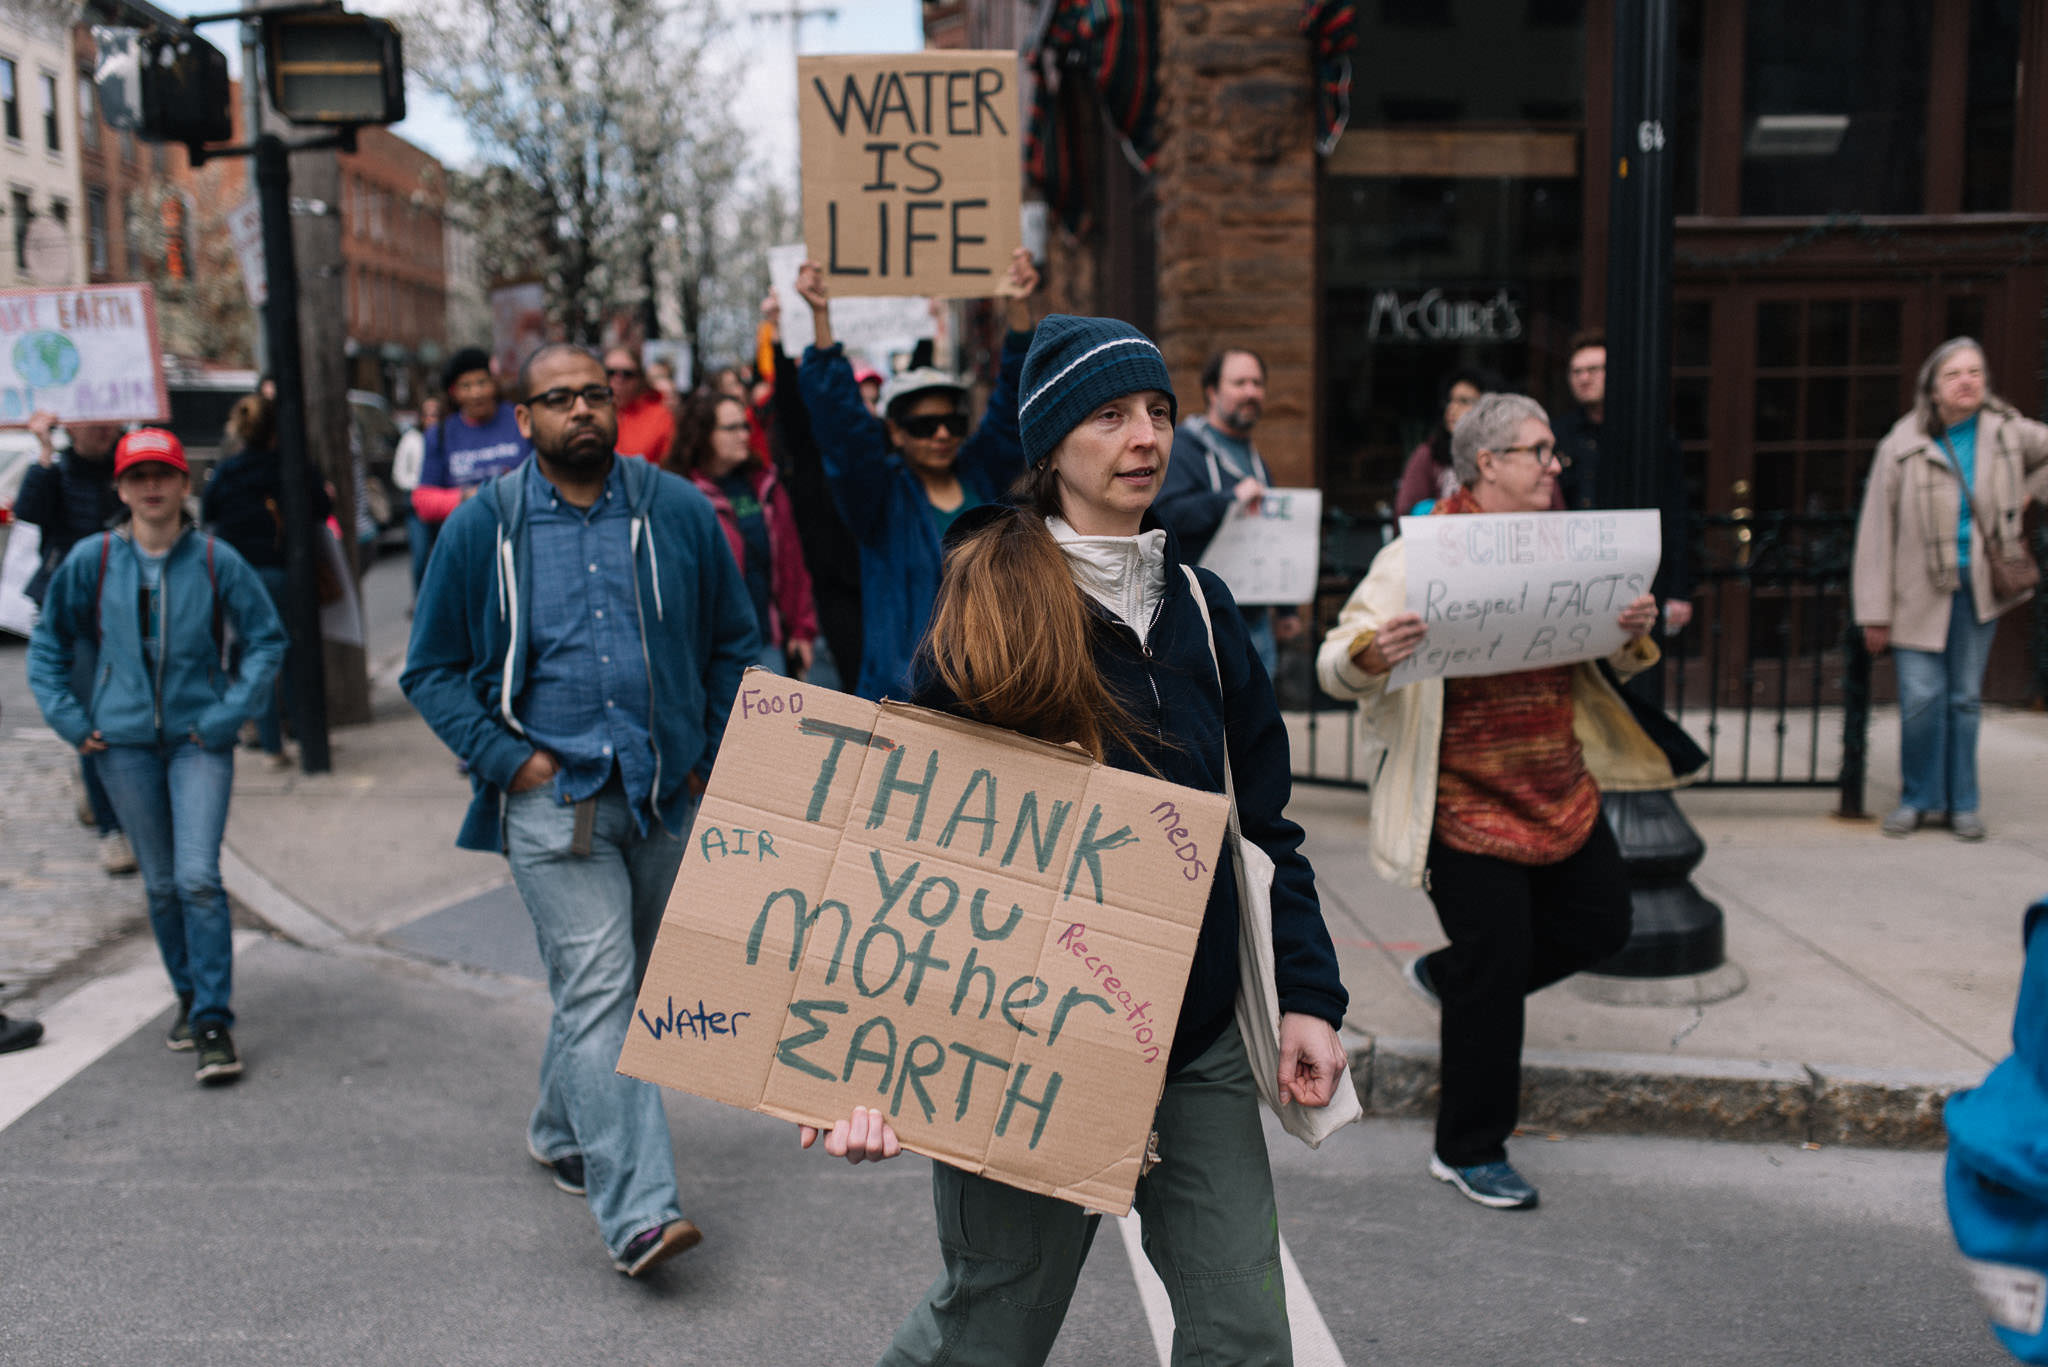 march-for-science-albany-ny-2017-022